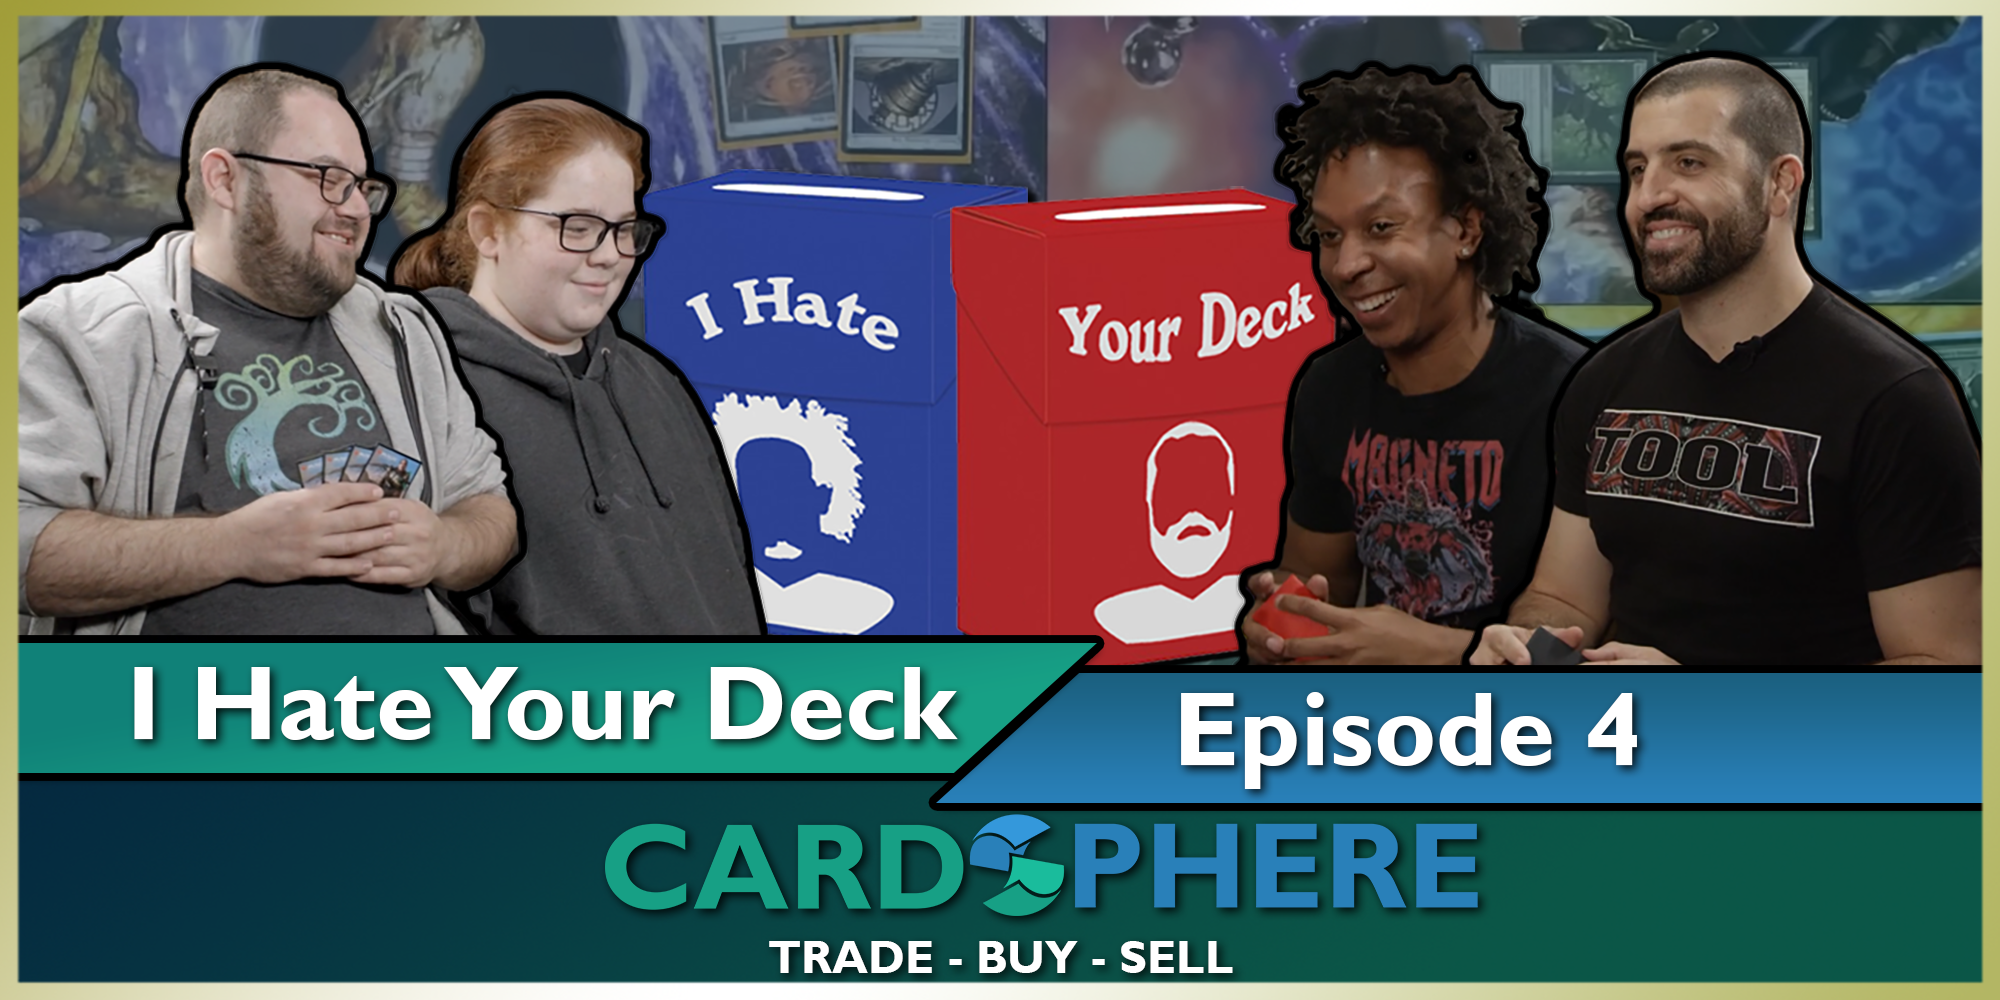 I Hate Your Deck - Episode 4